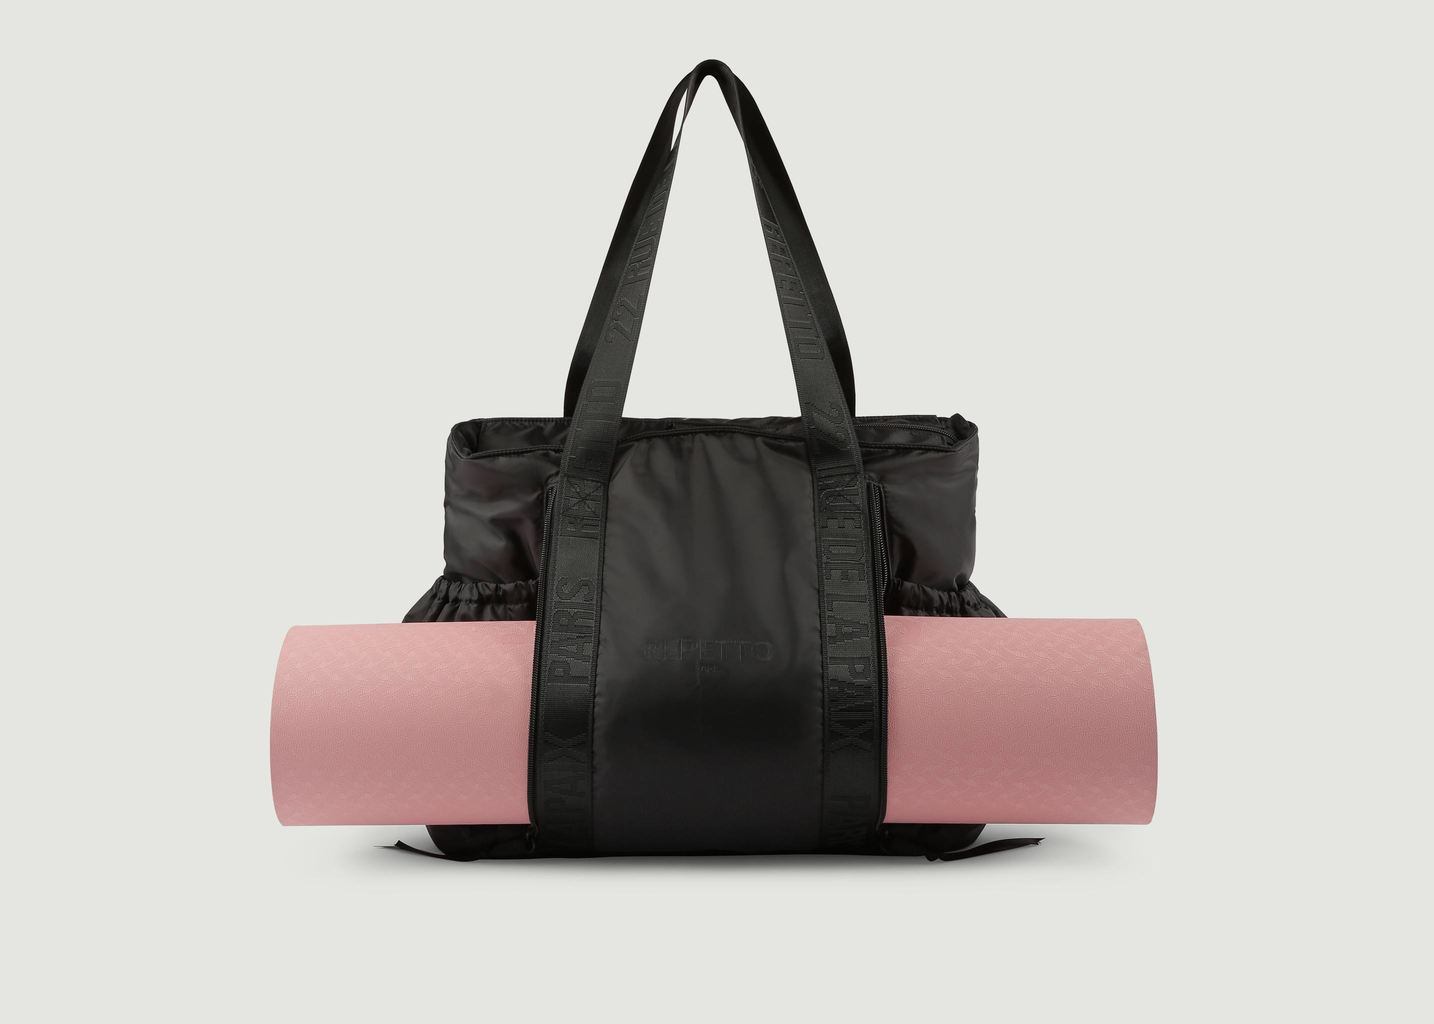 Grand Sac En Toile Asana - Repetto